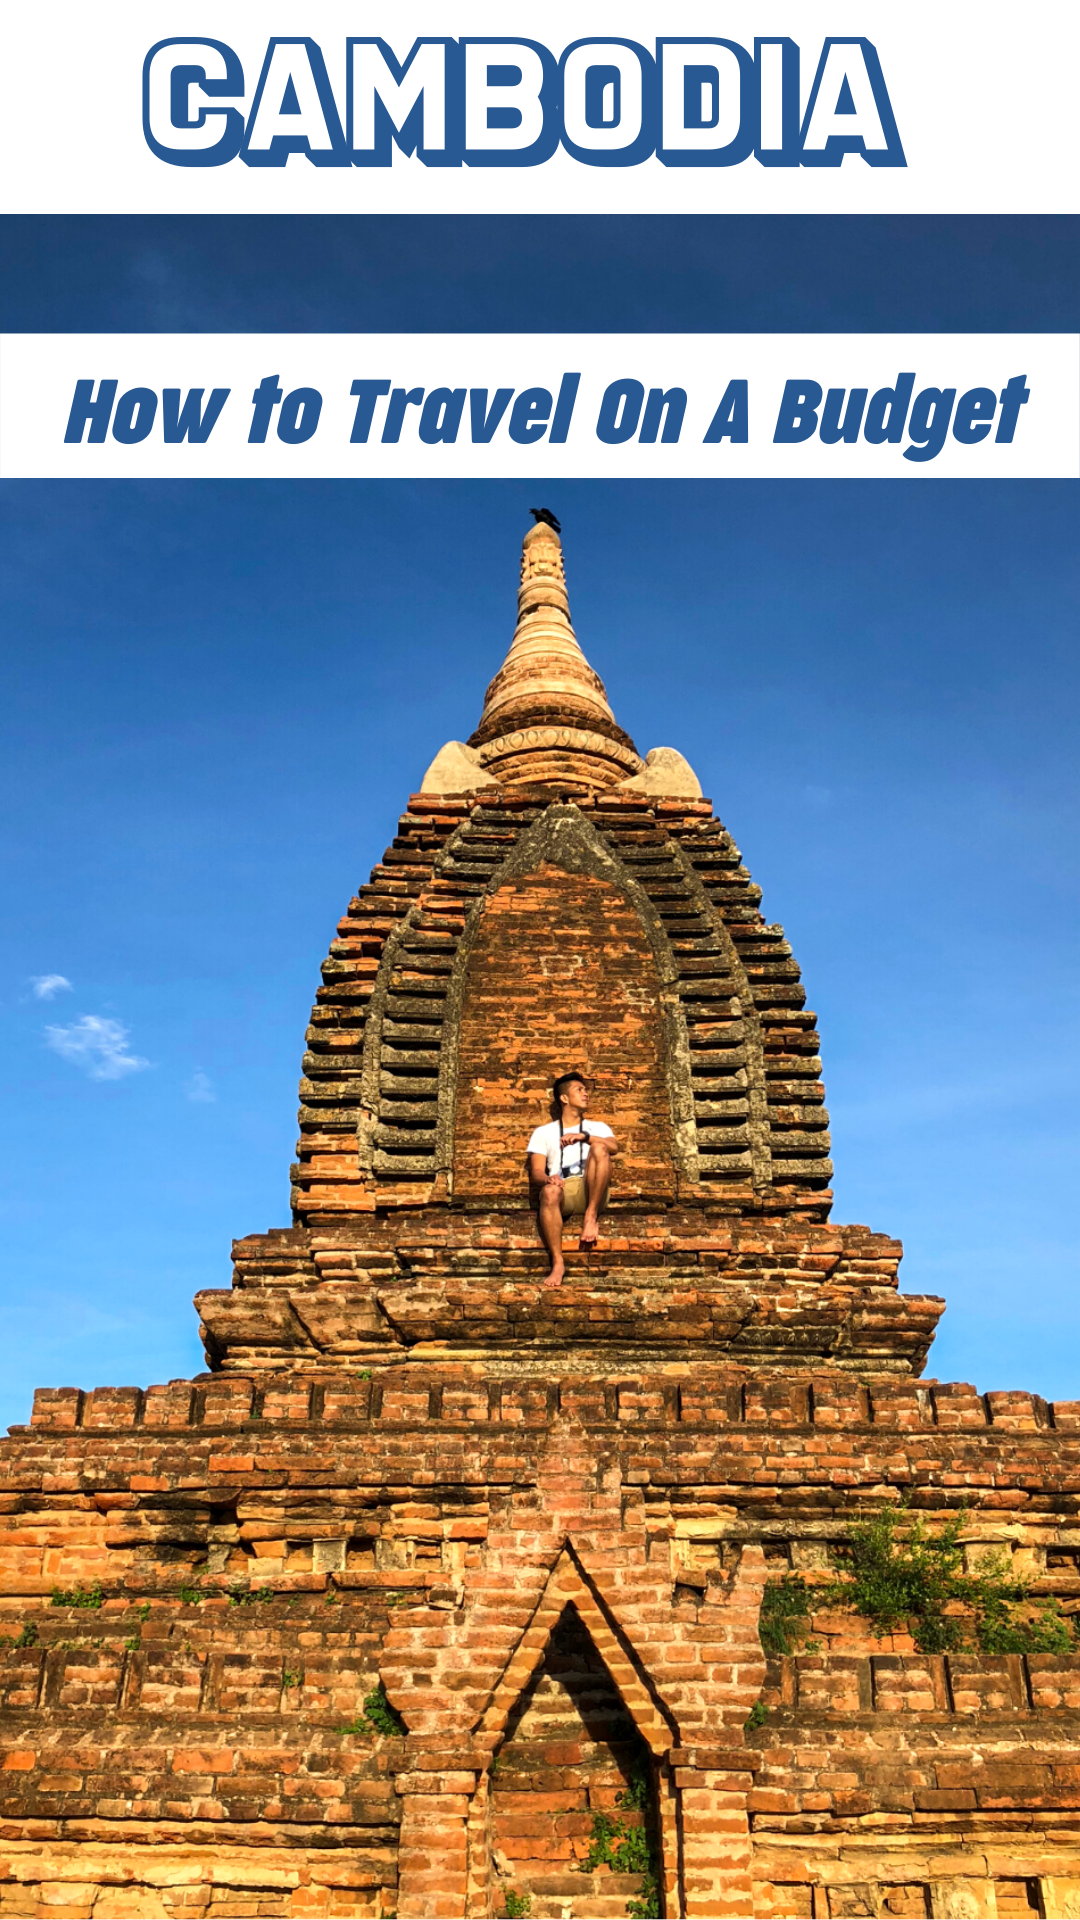 How to Travel On A Budget in Cambodia is the secret we can share with you. How to Travel Light when in Cambodia is just one of the secrets to true budget travel. How to Travel Cheap is one of the questions I am asked most often. How to Travel the World is a Reality not a myth. Our Big Escape Budget Travel Guide to Cambodia Covers all of these and is optimized for people who travel on a budget. #bigescape